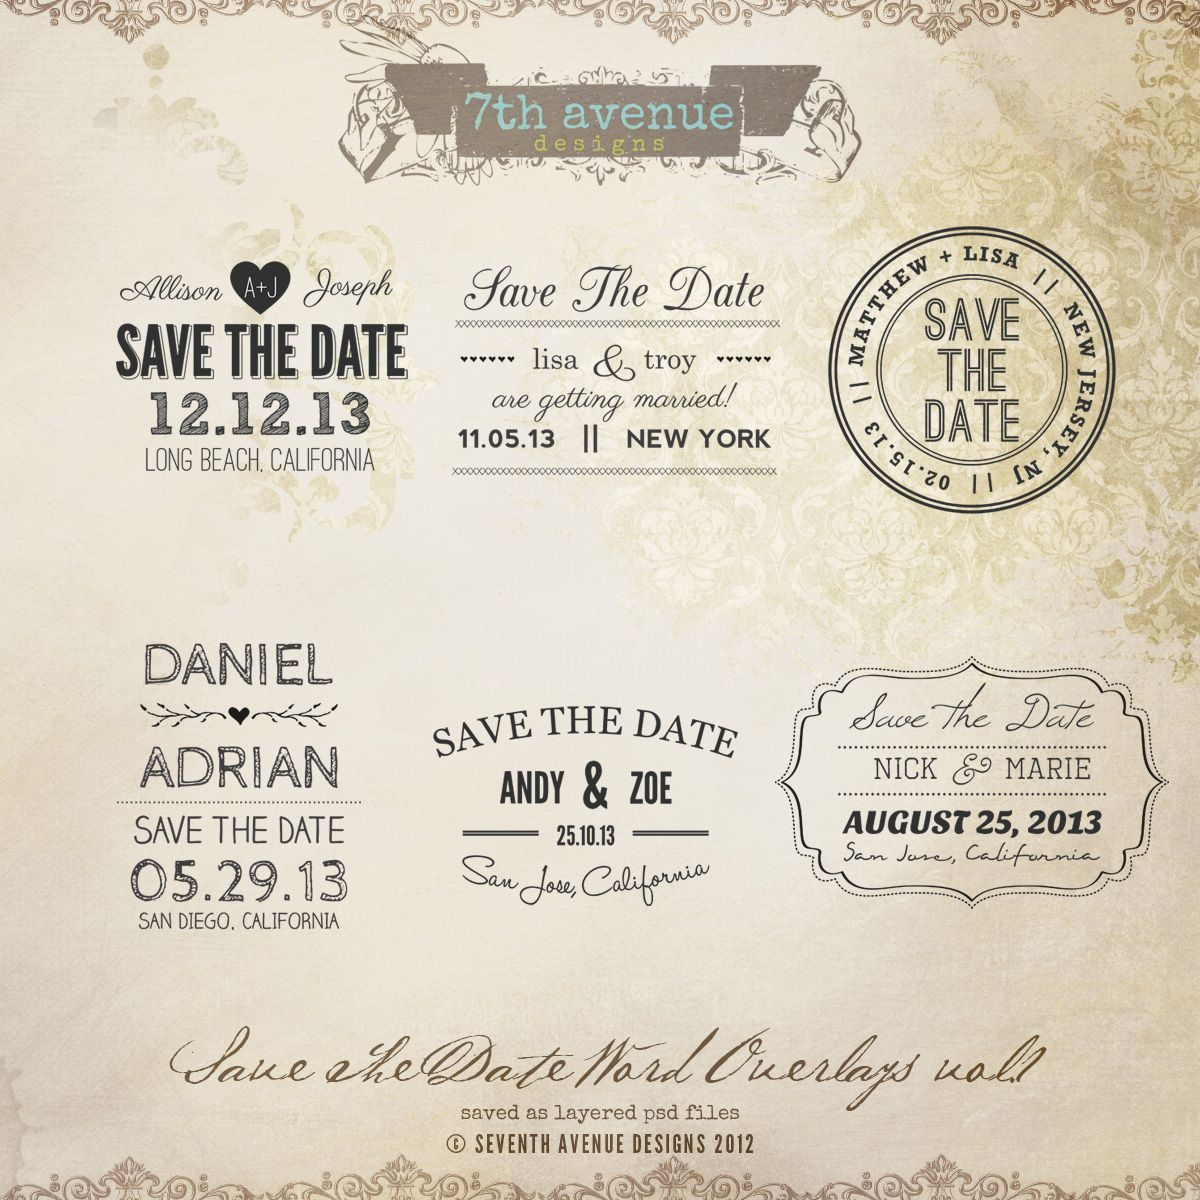 003 Imposing Save The Date Template Word Idea  Free Customizable For Holiday PartyFull